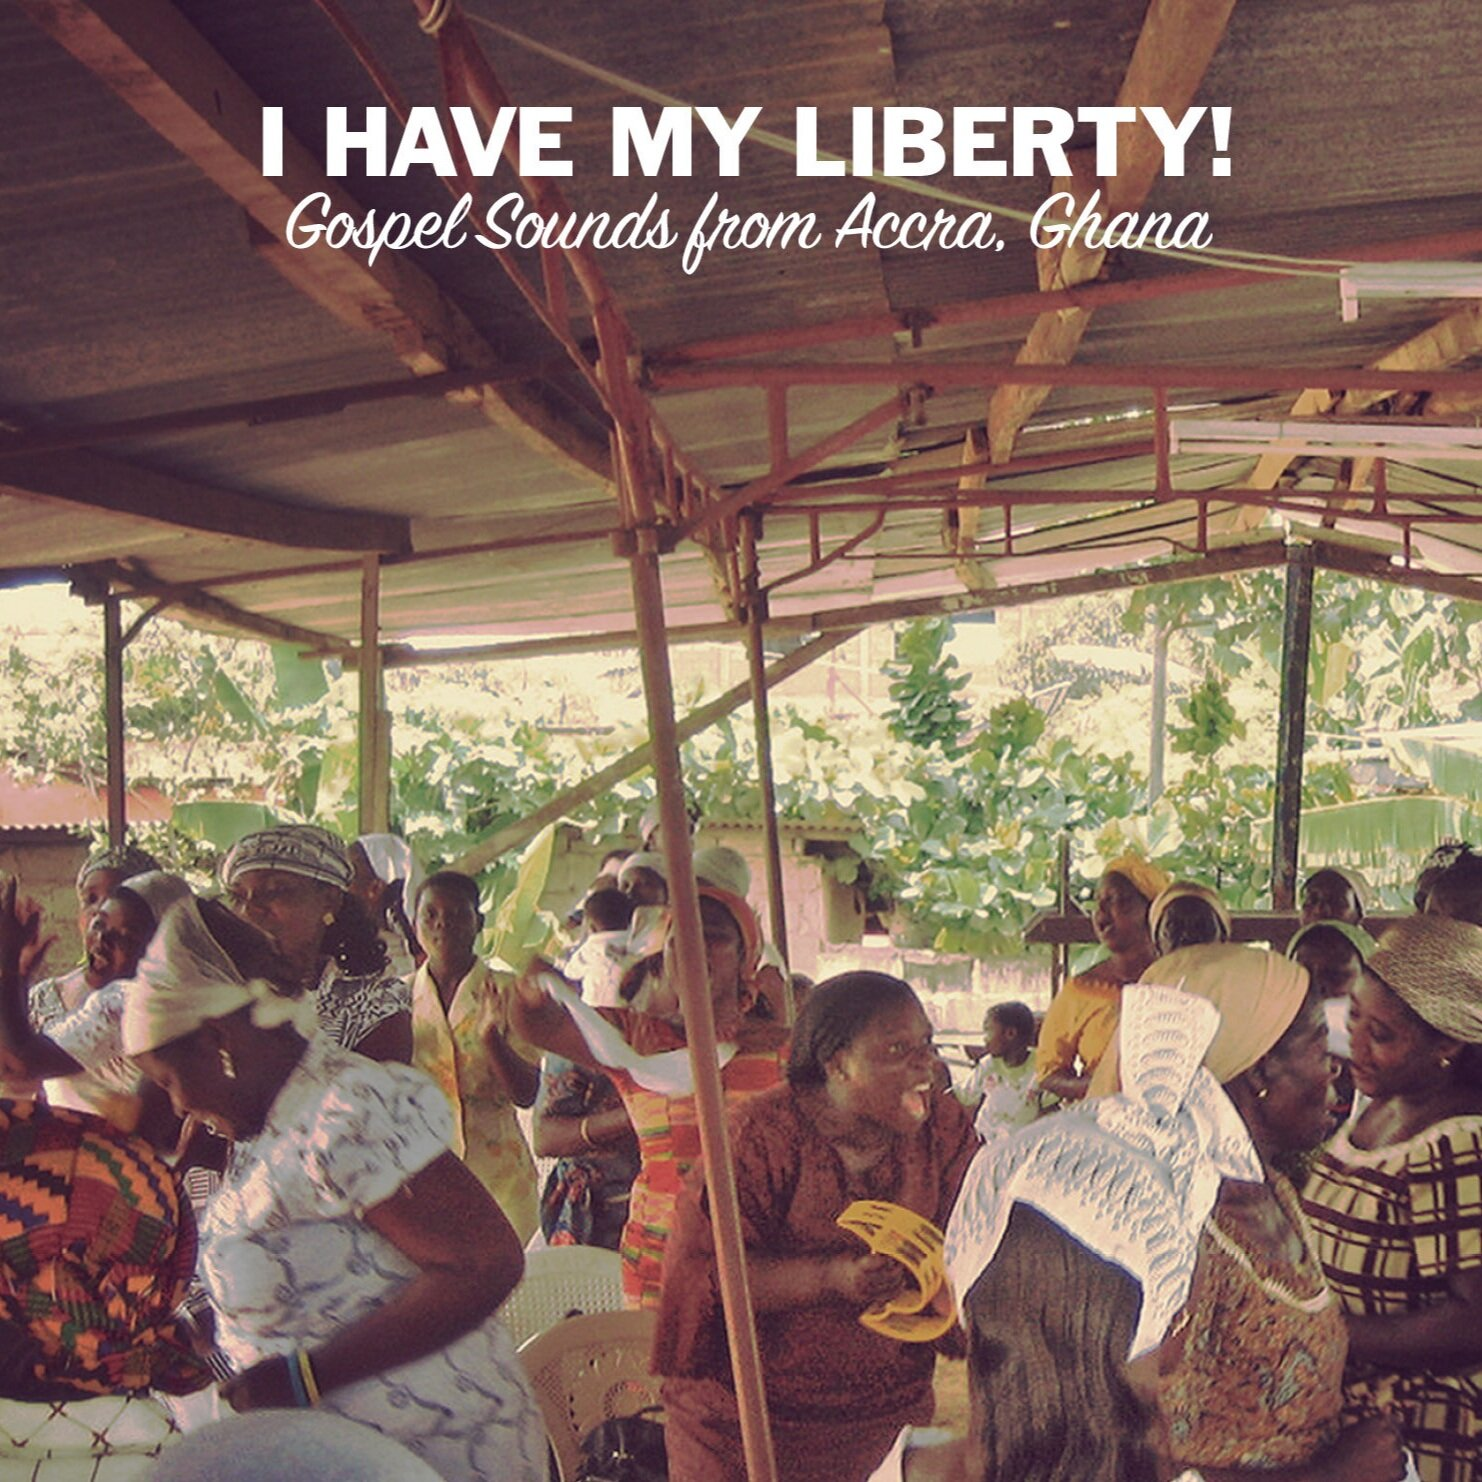 I Have My Liberty! - Album Art Design & Layout for Dust to Digital Records